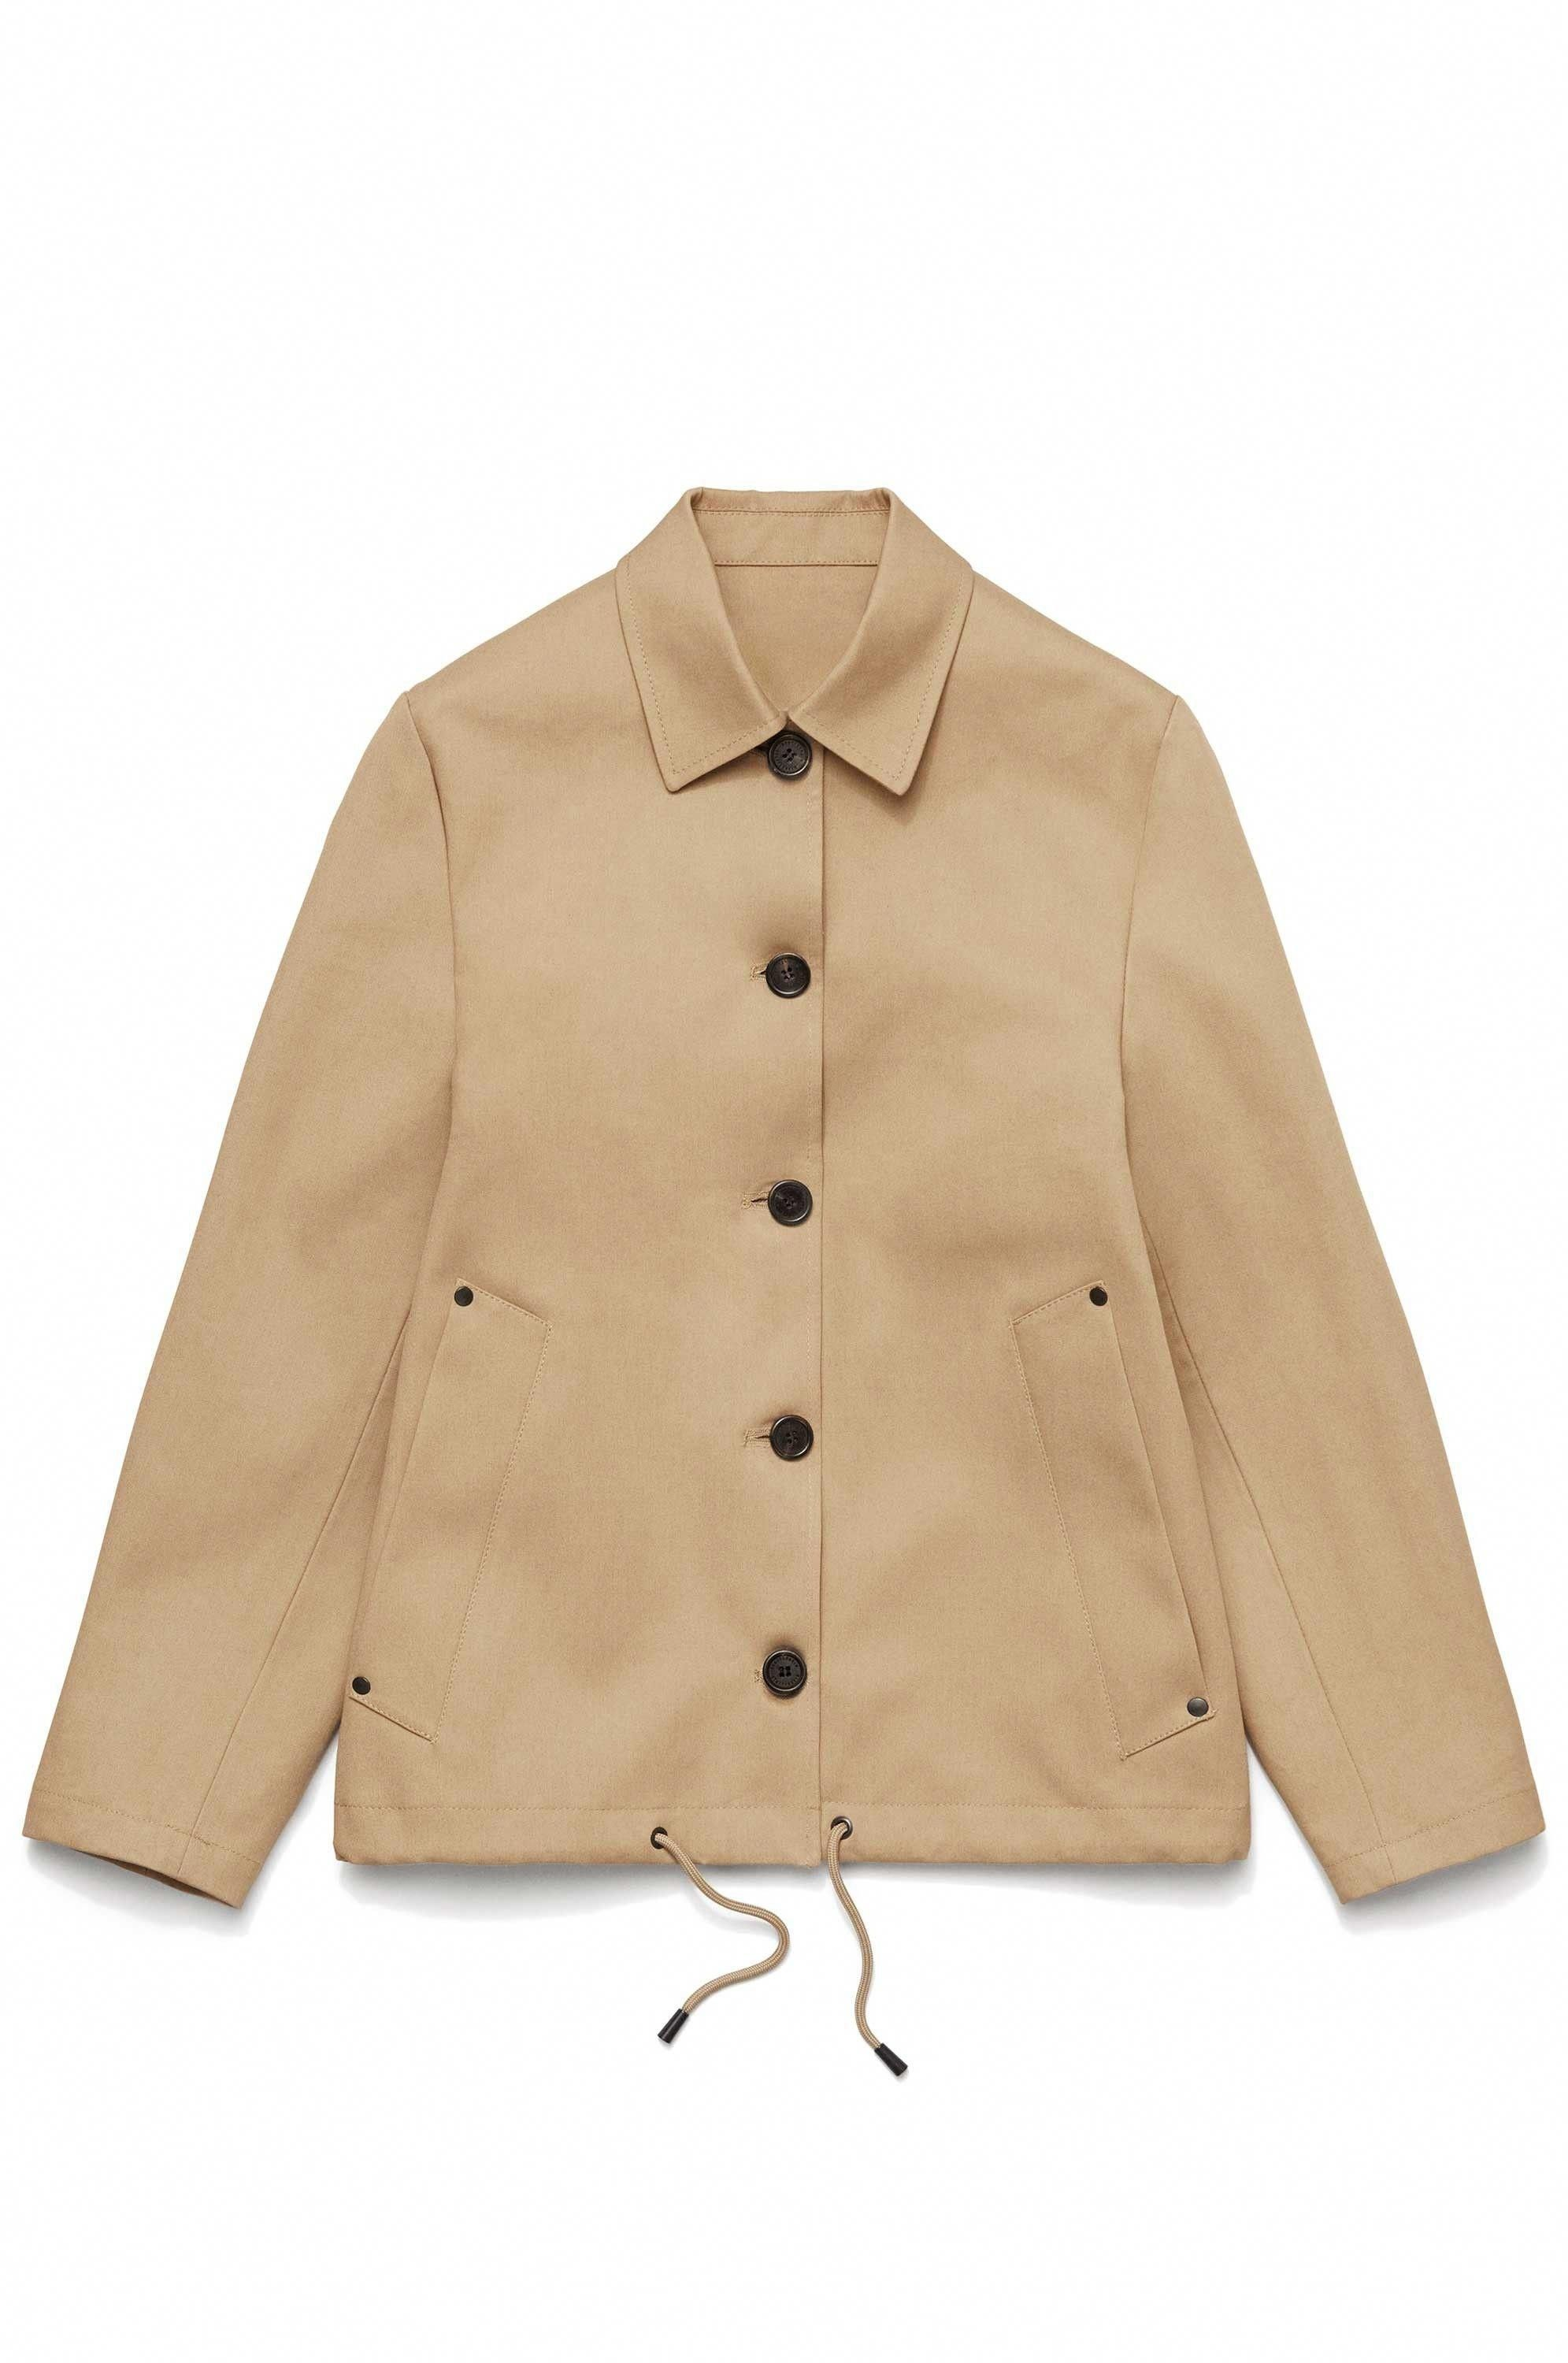 947399dd7 The Blåsut Sand women's coach jacket is handmade in exclusively ...